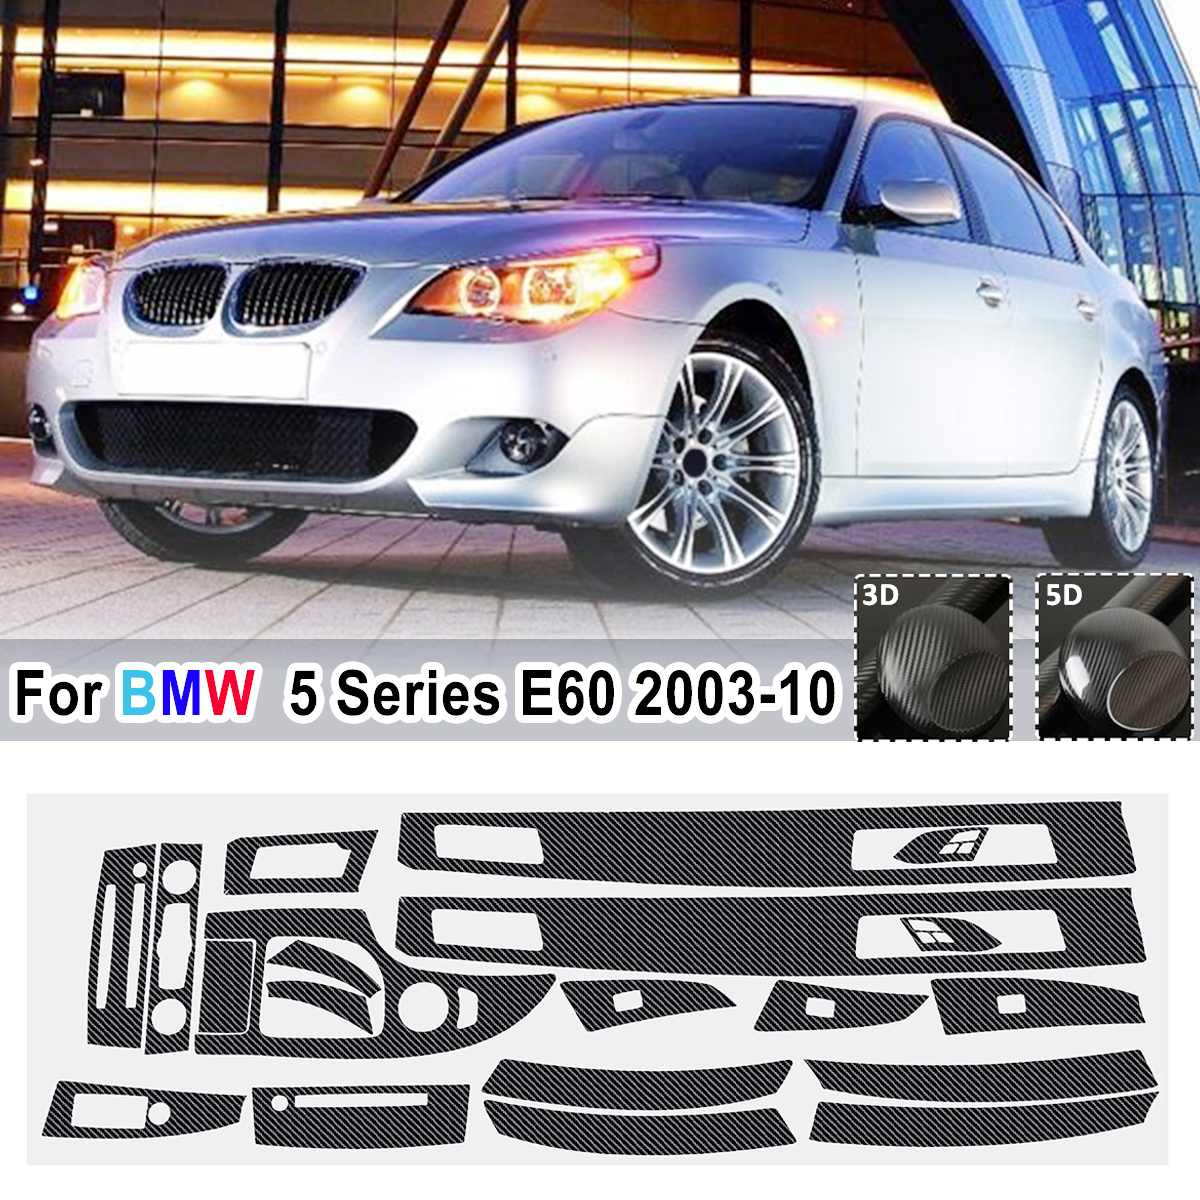 18pcs 5D Glossy/ 3D Matte Carbon Fiber Style Sticker Vinyl Decal Trim For BMW 5 Series E60 2003-2010 Only Right Hand Drive RHD